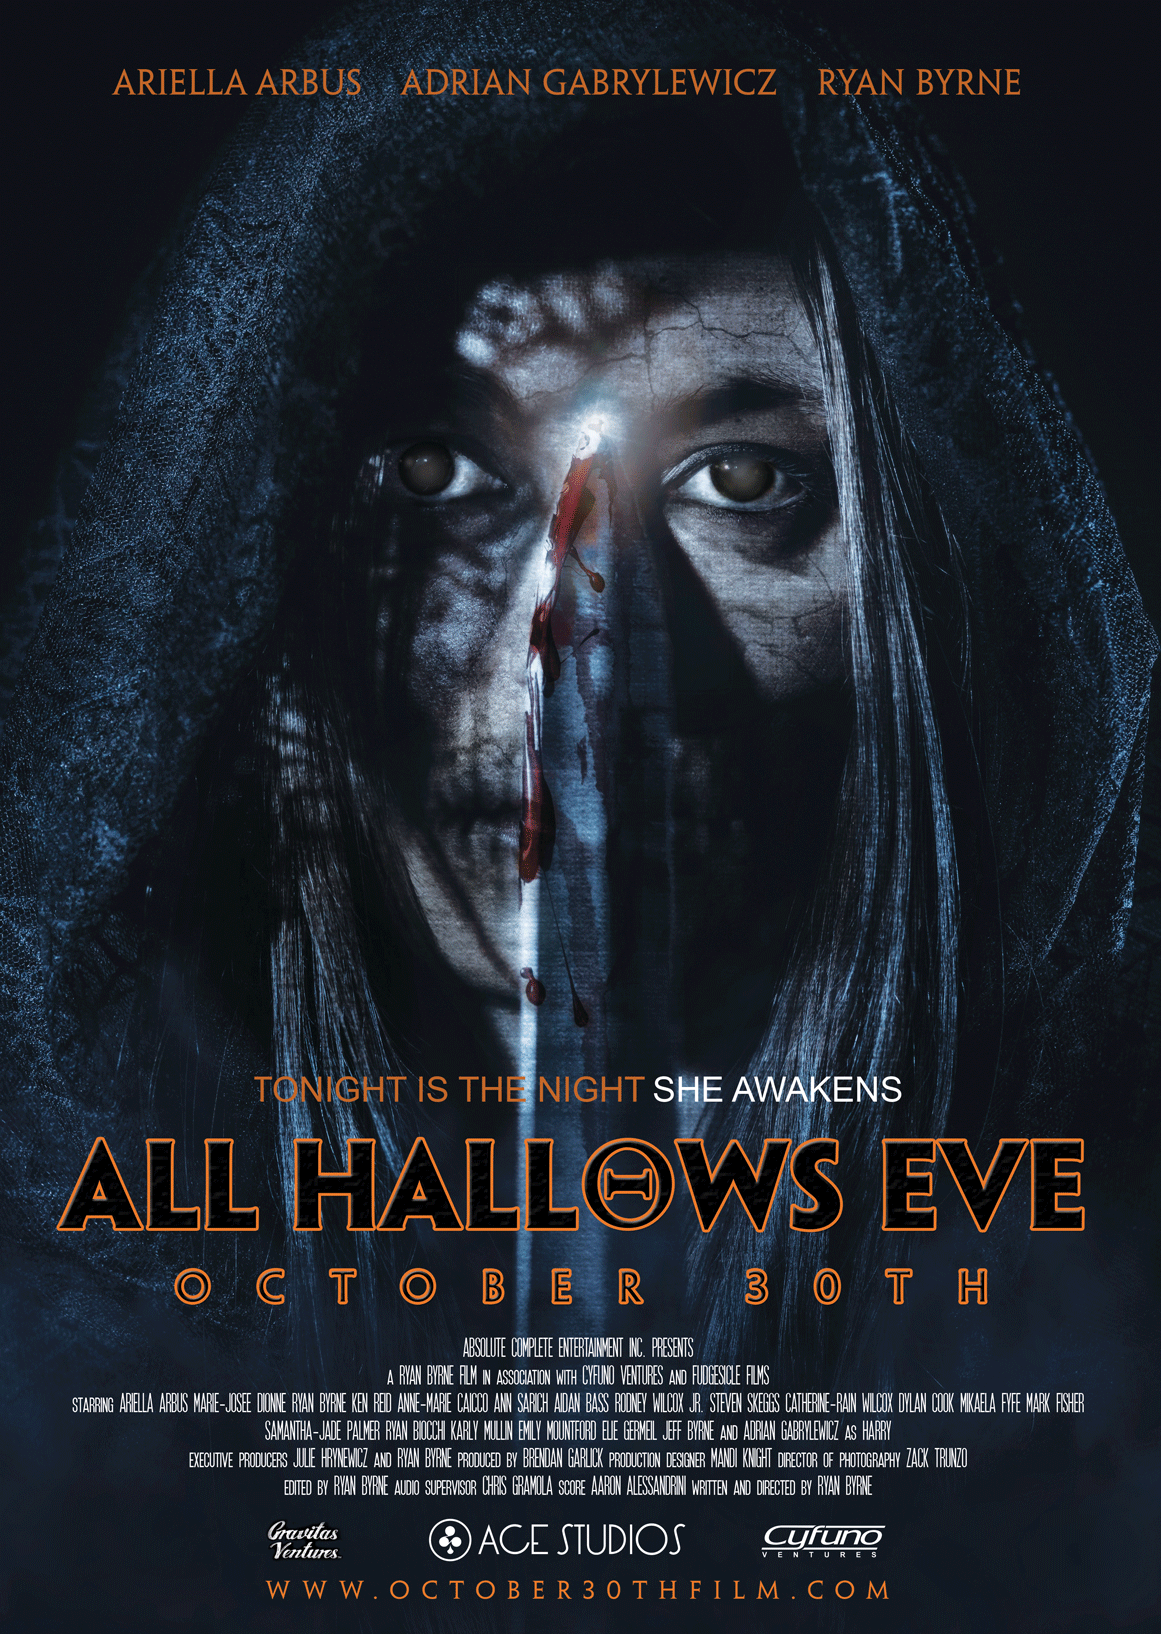 All Hallows Staining: All Hallows Eve – A Psychological Thriller